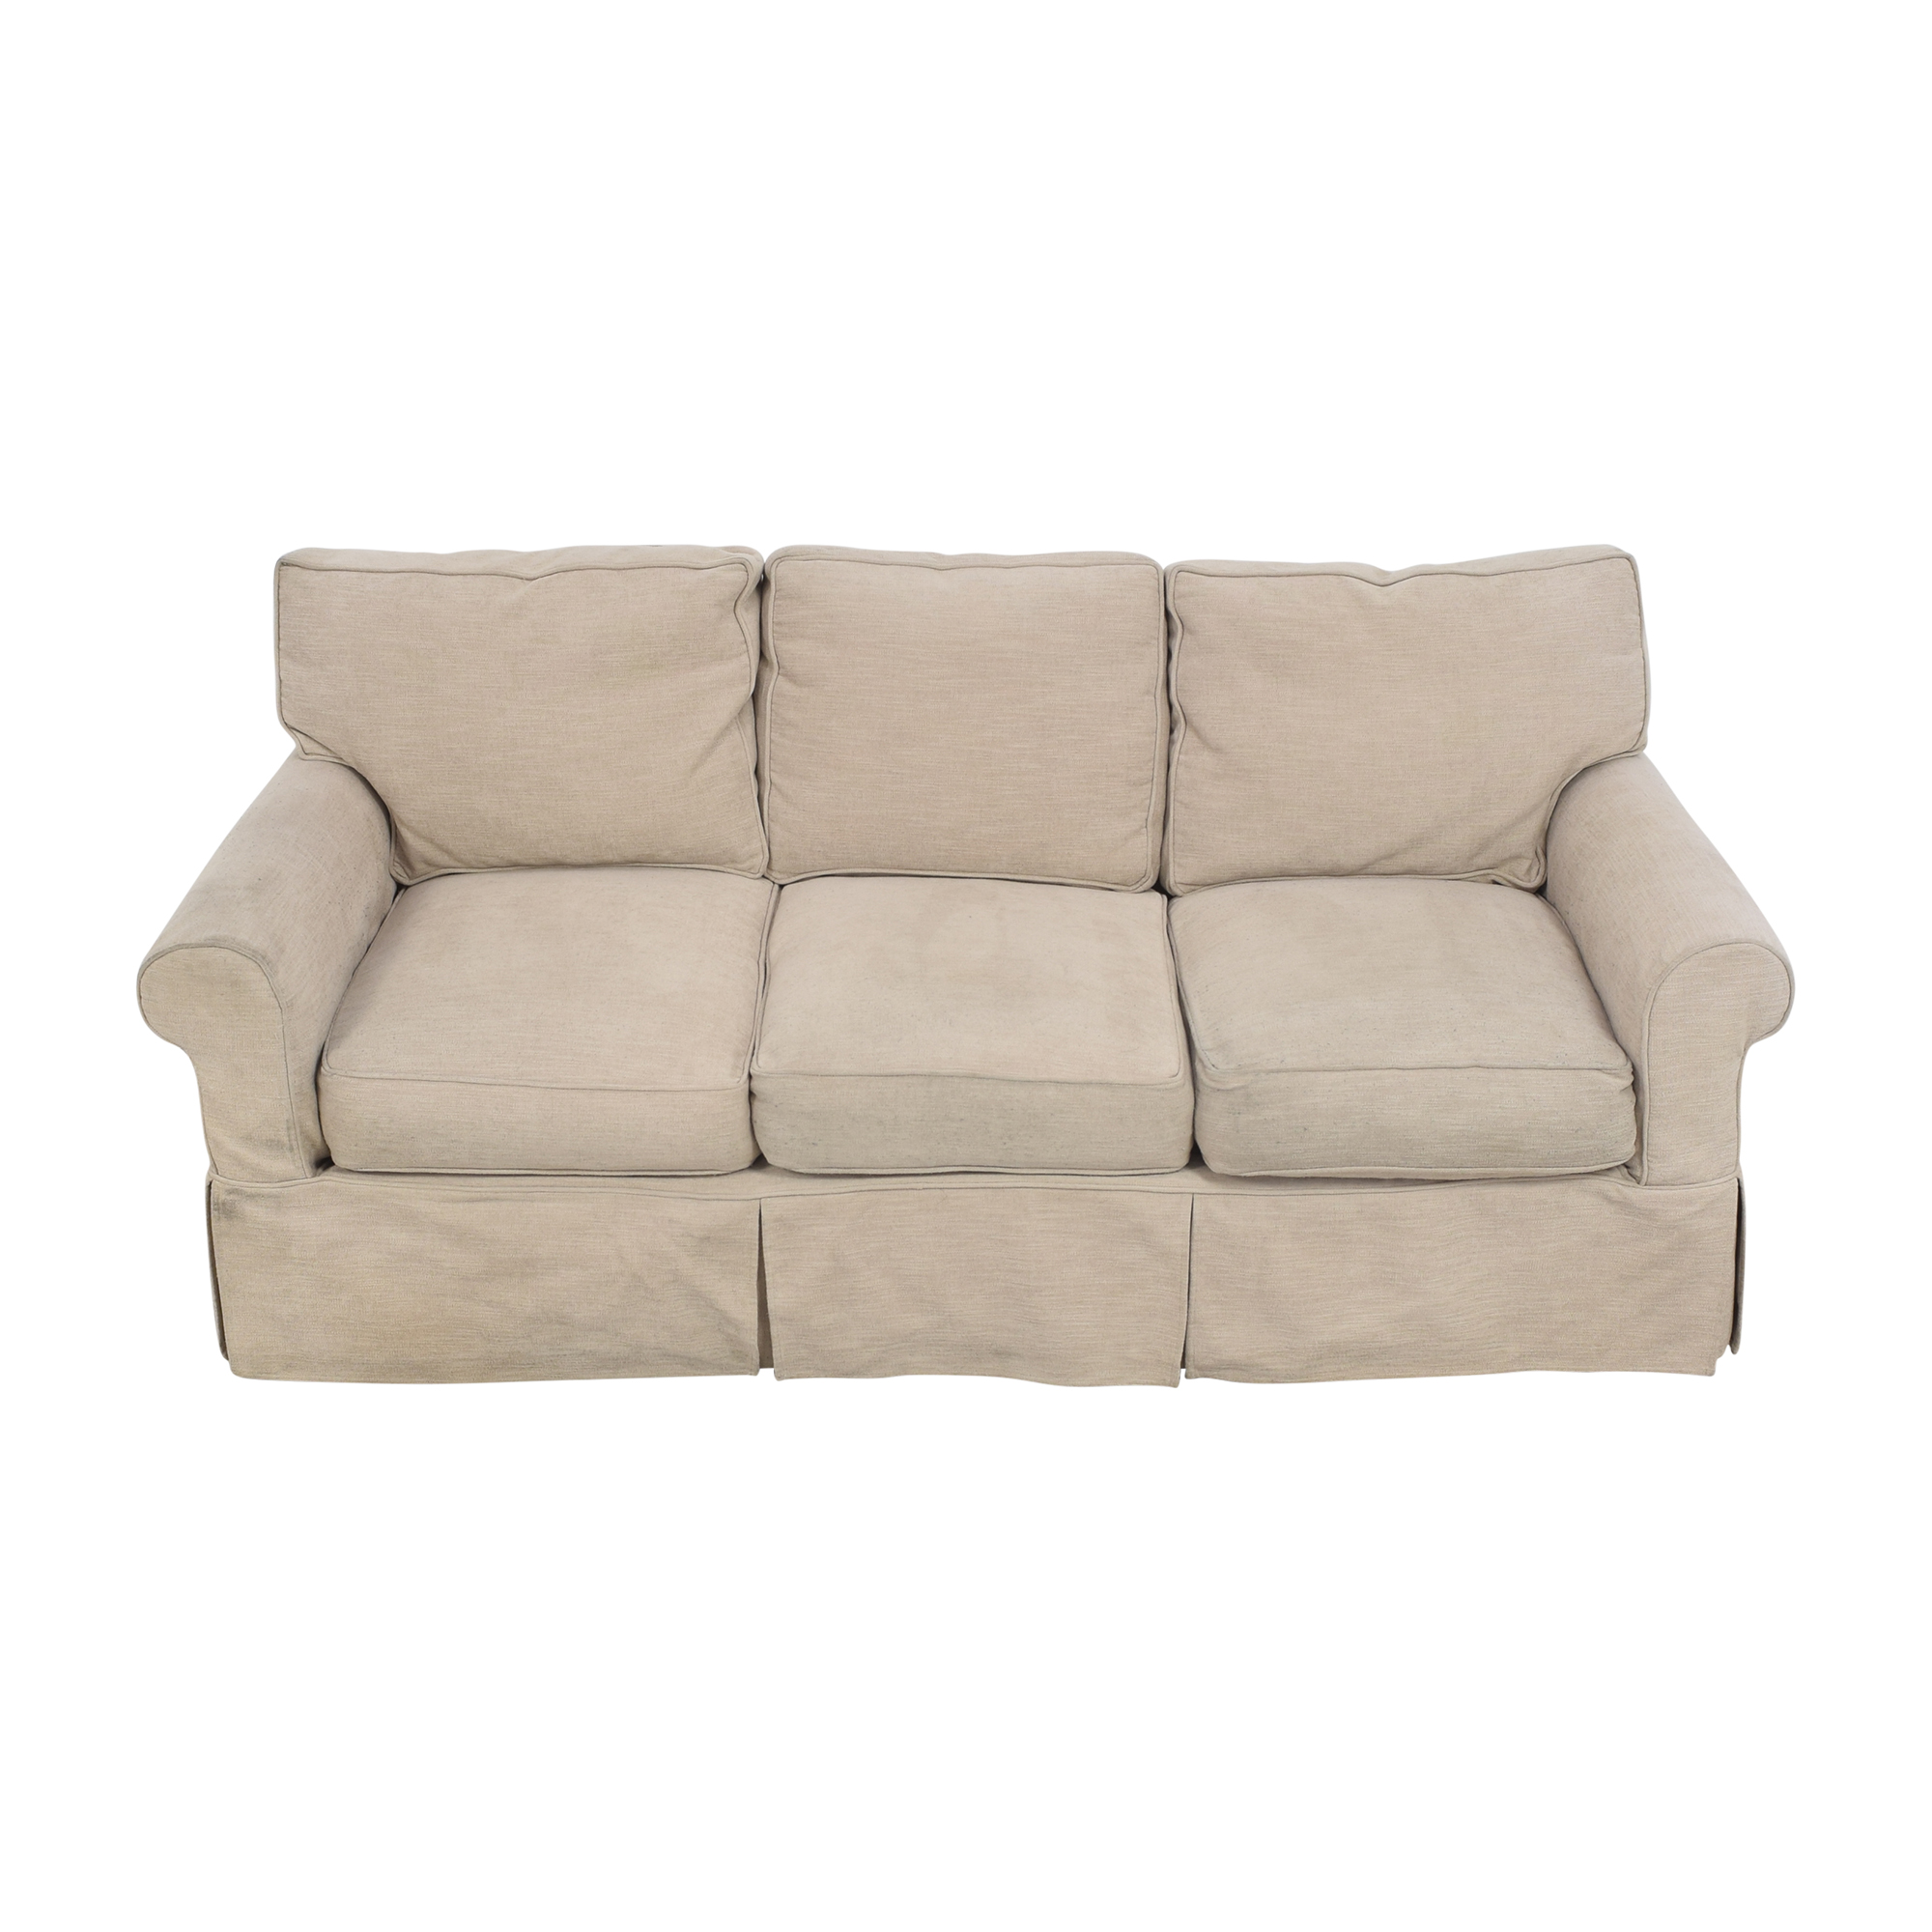 Country Willow Country Willow Roll Arm Slipcovered Sofa coupon